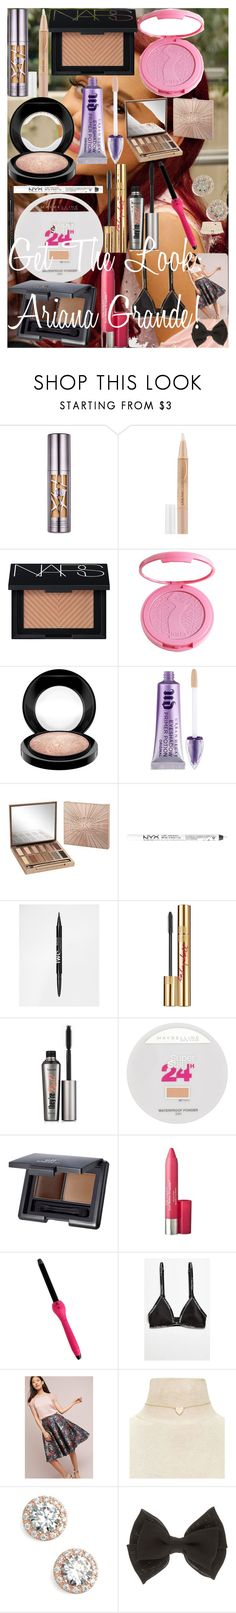 """Get The Look: Ariana Grande! ♡"" by oroartye-1 on Polyvore featuring beauty, Urban Decay, Maybelline, NARS Cosmetics, tarte, MAC Cosmetics, NYX, Yves Saint Laurent, Benefit and e.l.f."